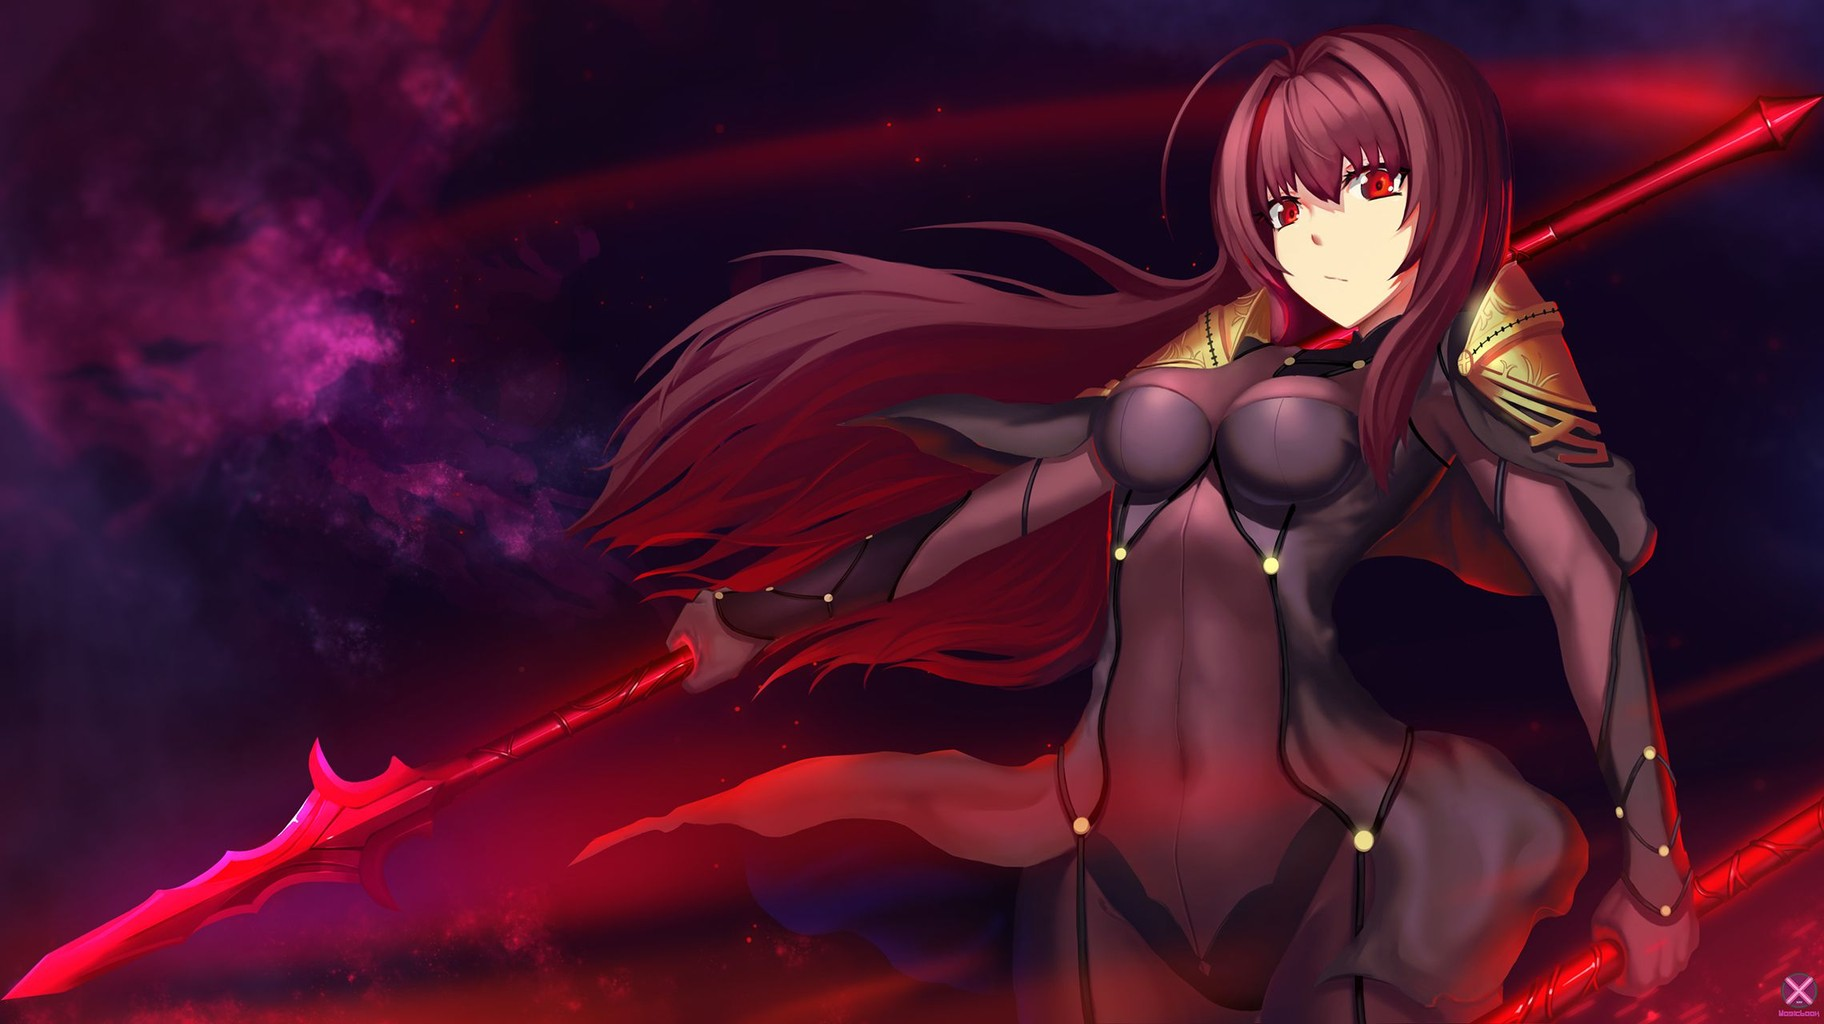 scathach_(fategrand_order)164